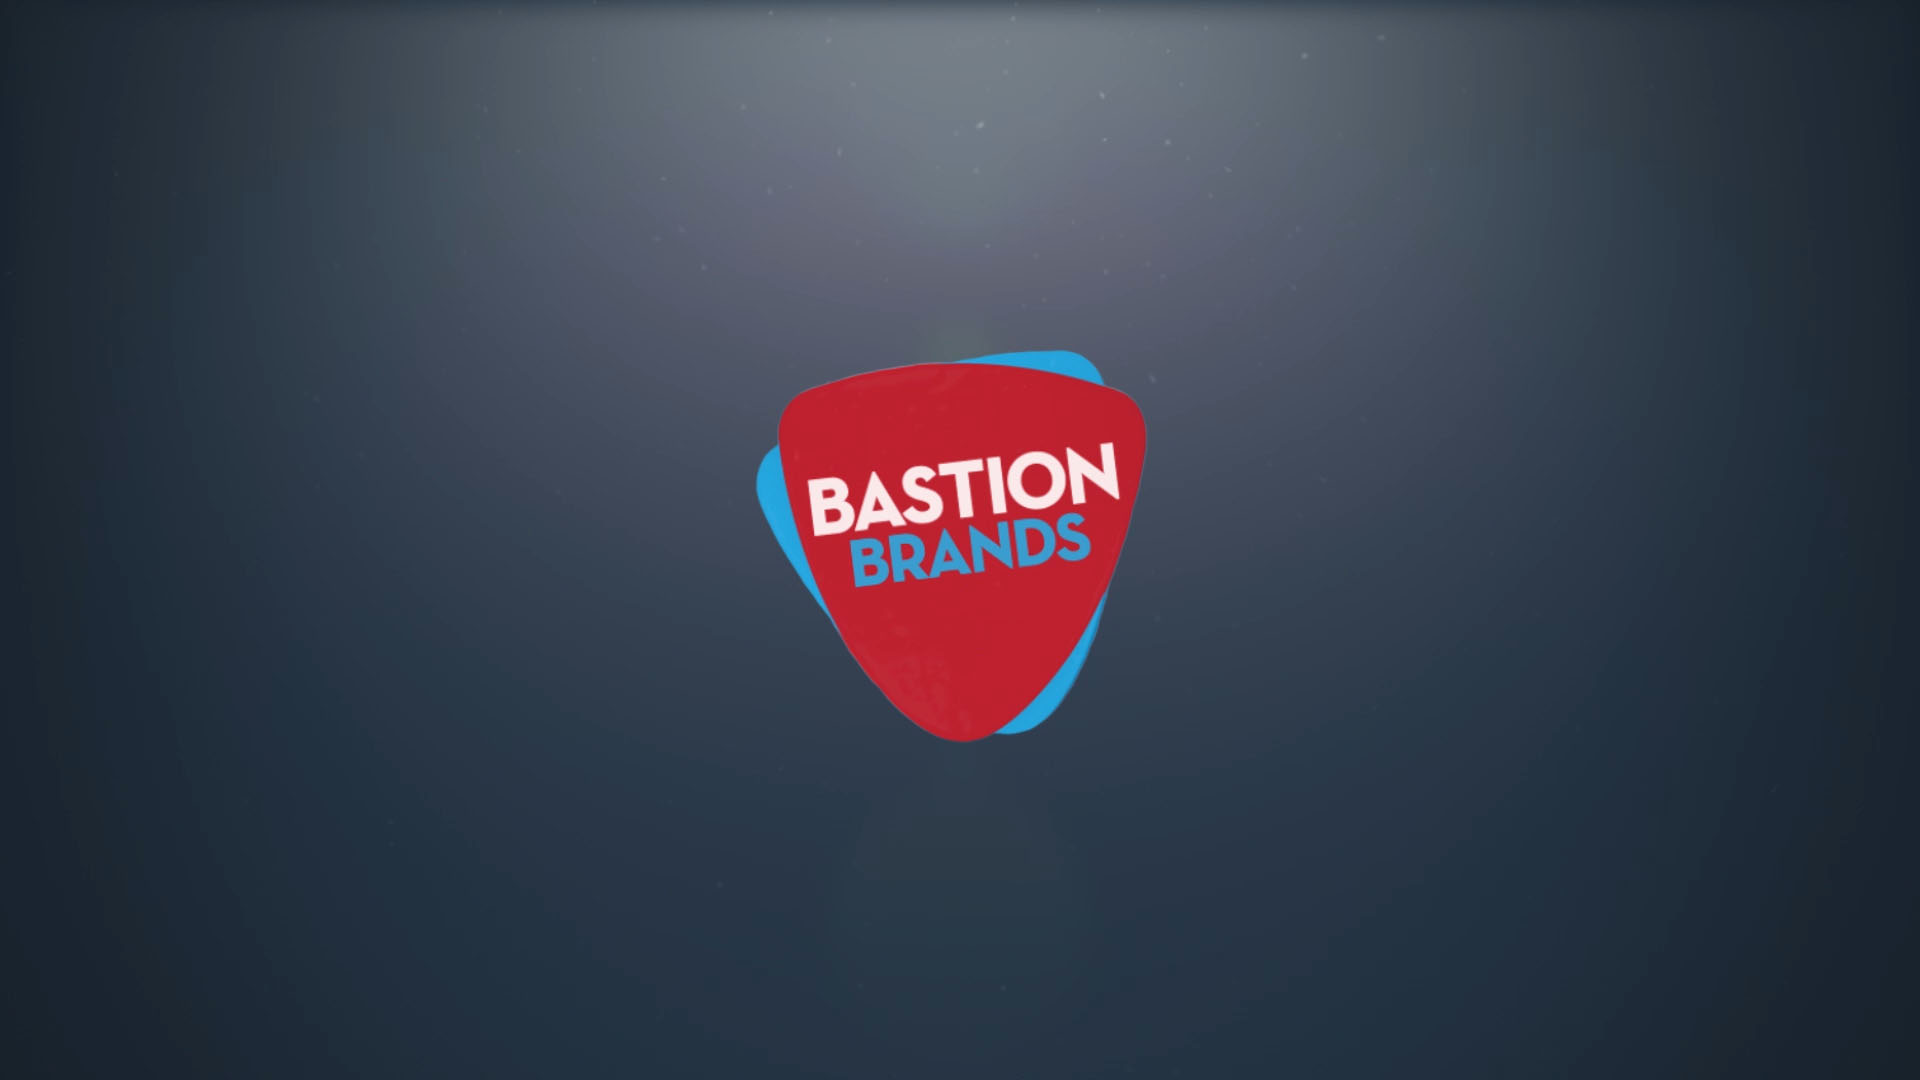 Bastion Brands_27